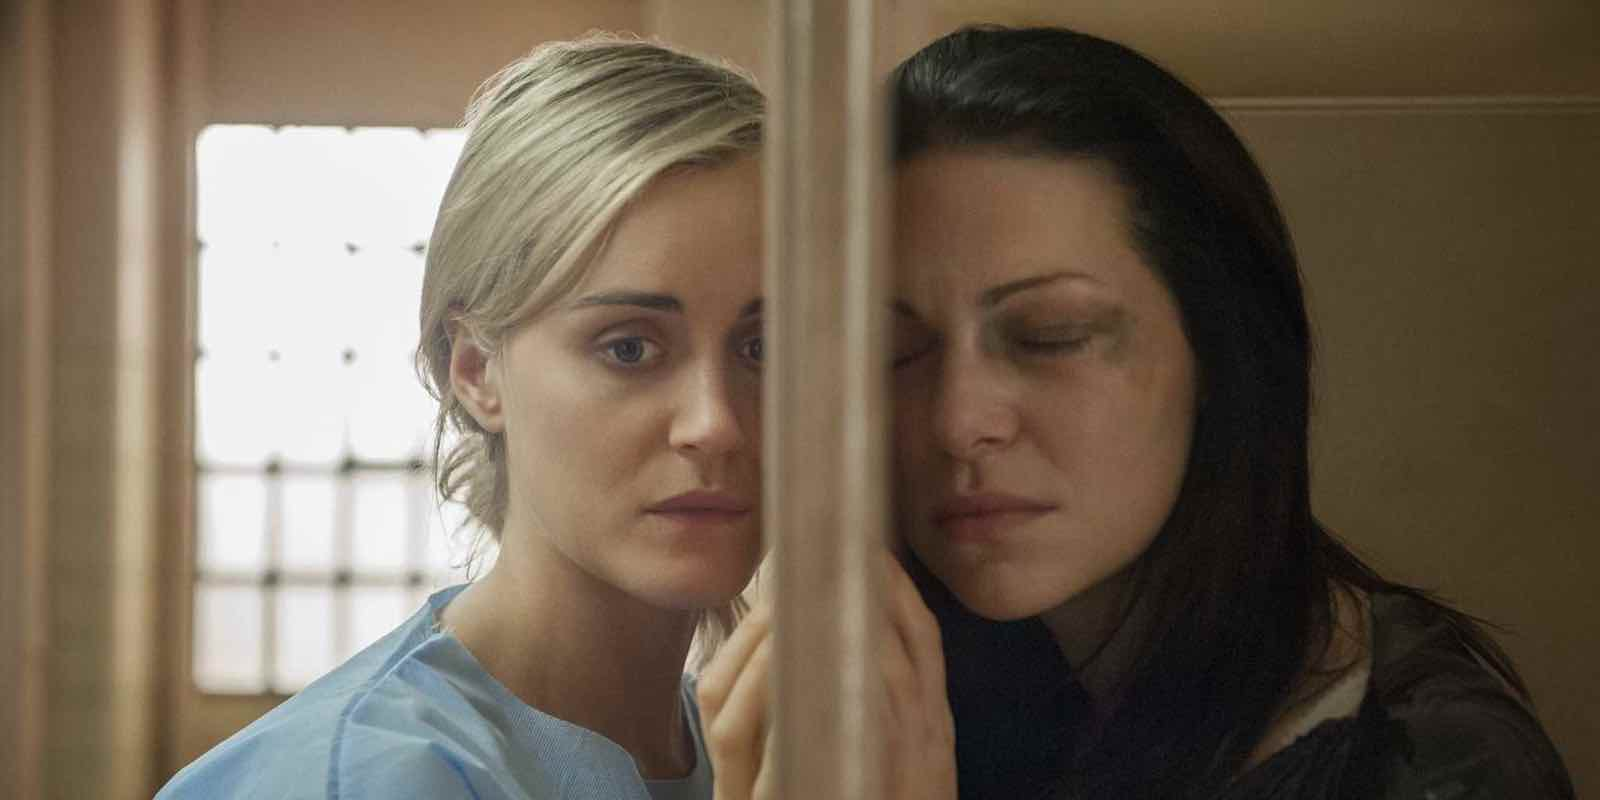 To celebrate the end of these women's lives in prison, here's a quick recap on where our favorite inmates stand after 'Orange is the New Black' season six.